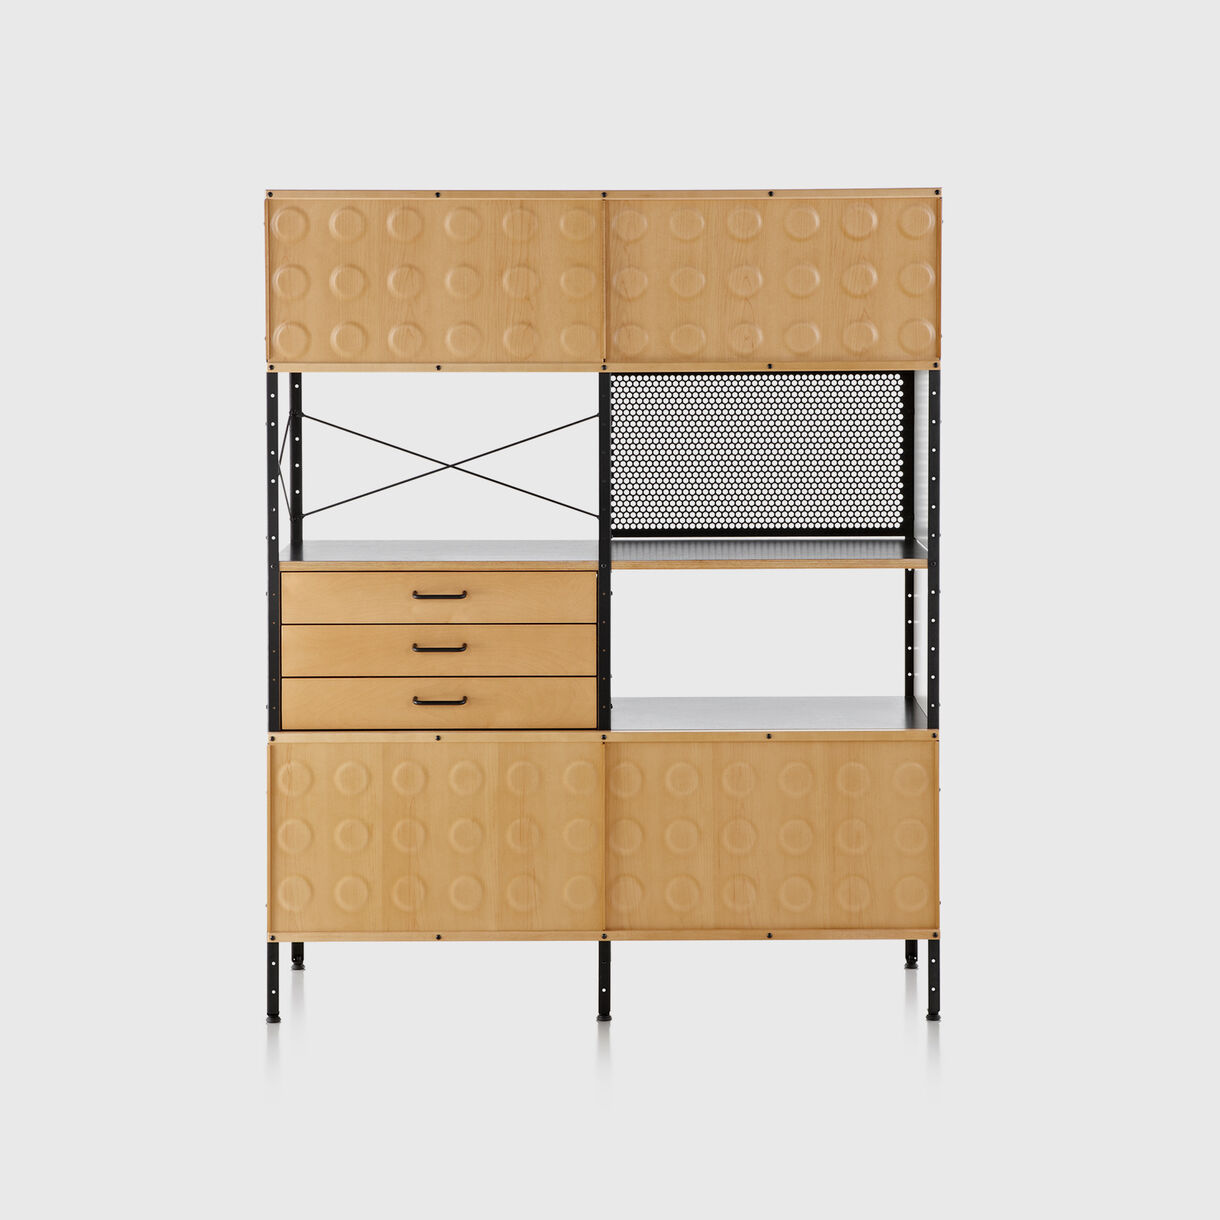 Eames Storage Unit, 4x2